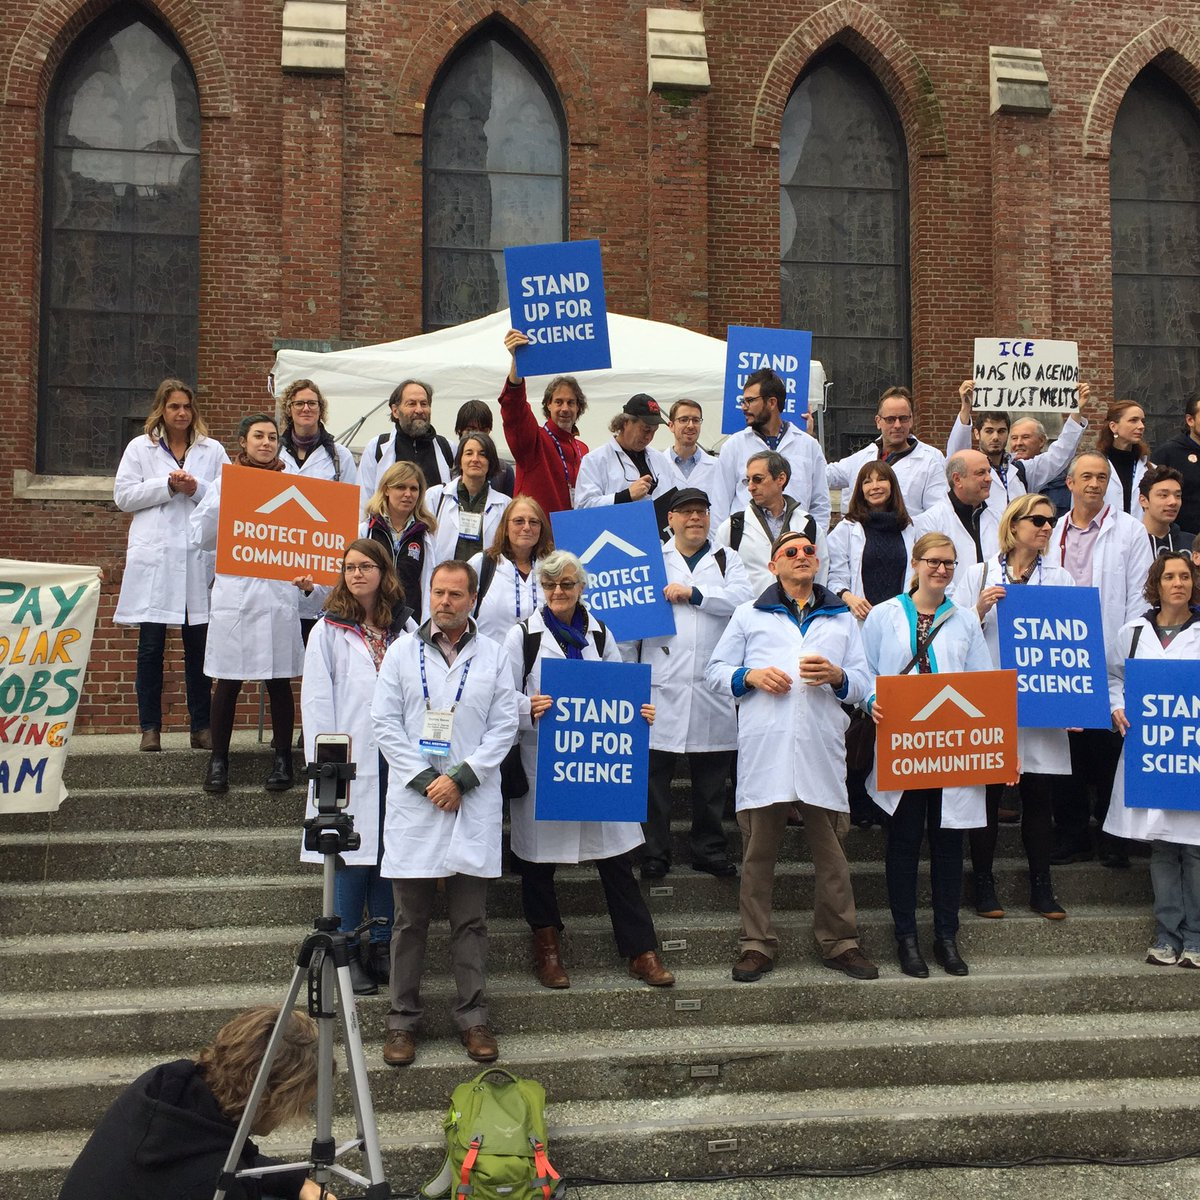 Scientists and others protest to defend science at the American Geophysical Union meeting in San Francisco, December, 2016